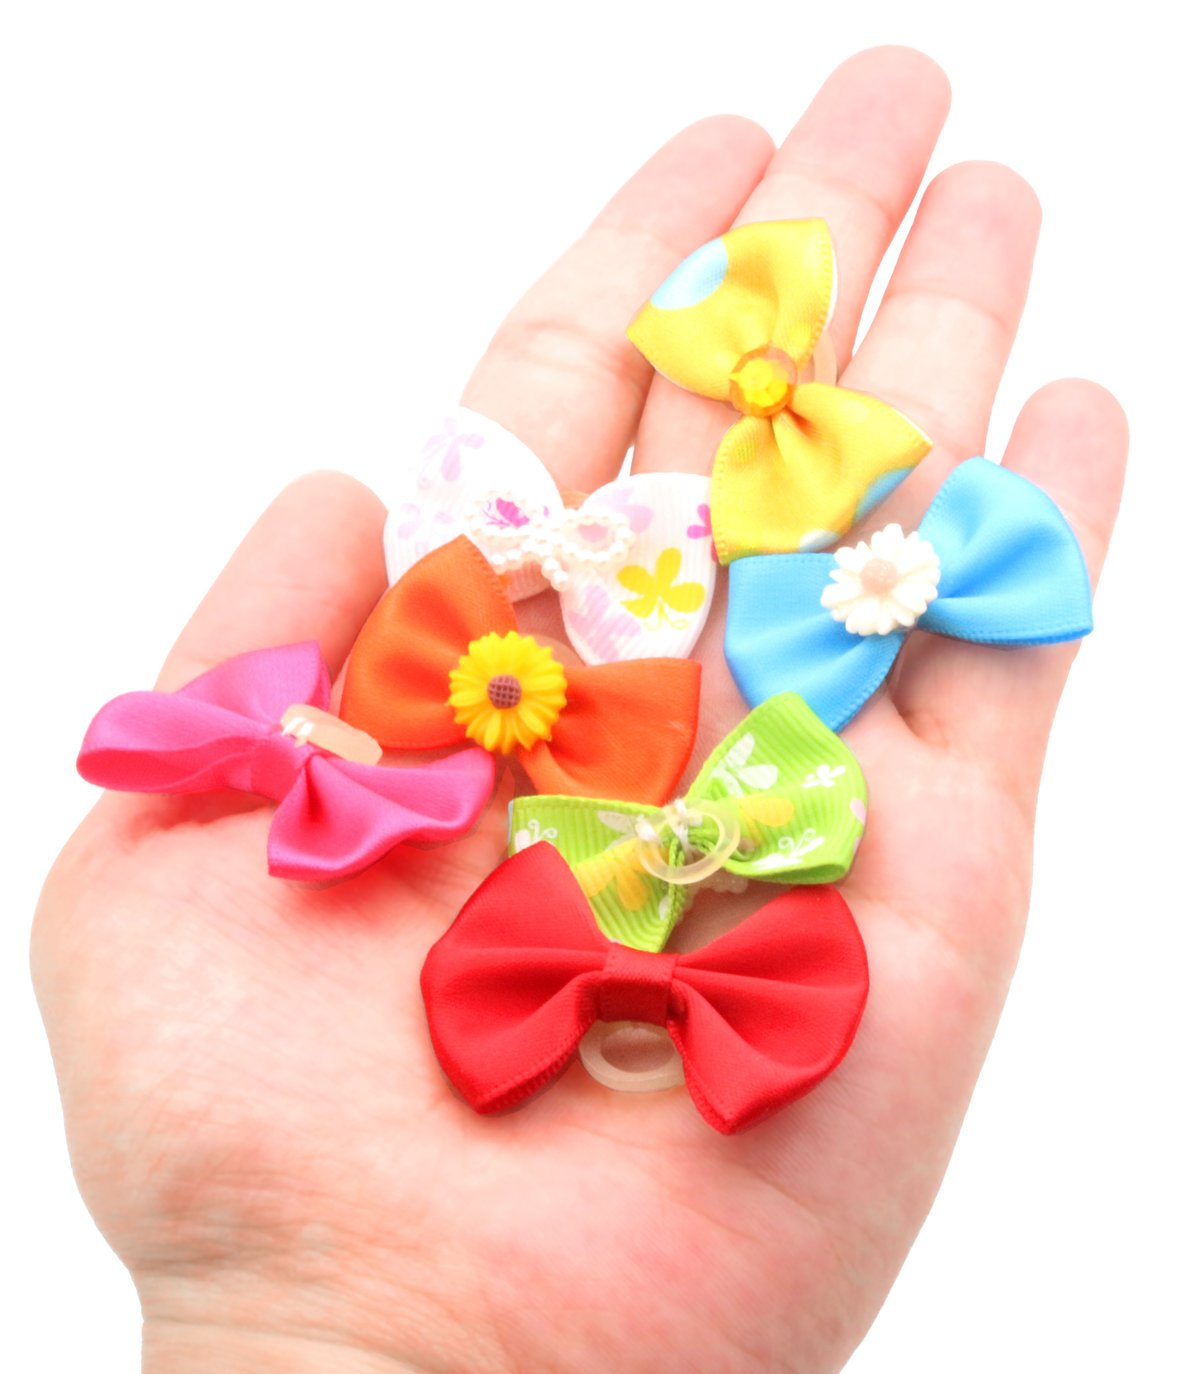 YOY 50pcs/25 Pairs Adorable Grosgrain Ribbon Pet Dog Hair Bows with Rubber Bands - Puppy Topknot Cat Kitty Doggy Grooming Hair Accessories Bow knots Headdress Flowers Set for Groomer by YOY (Image #7)